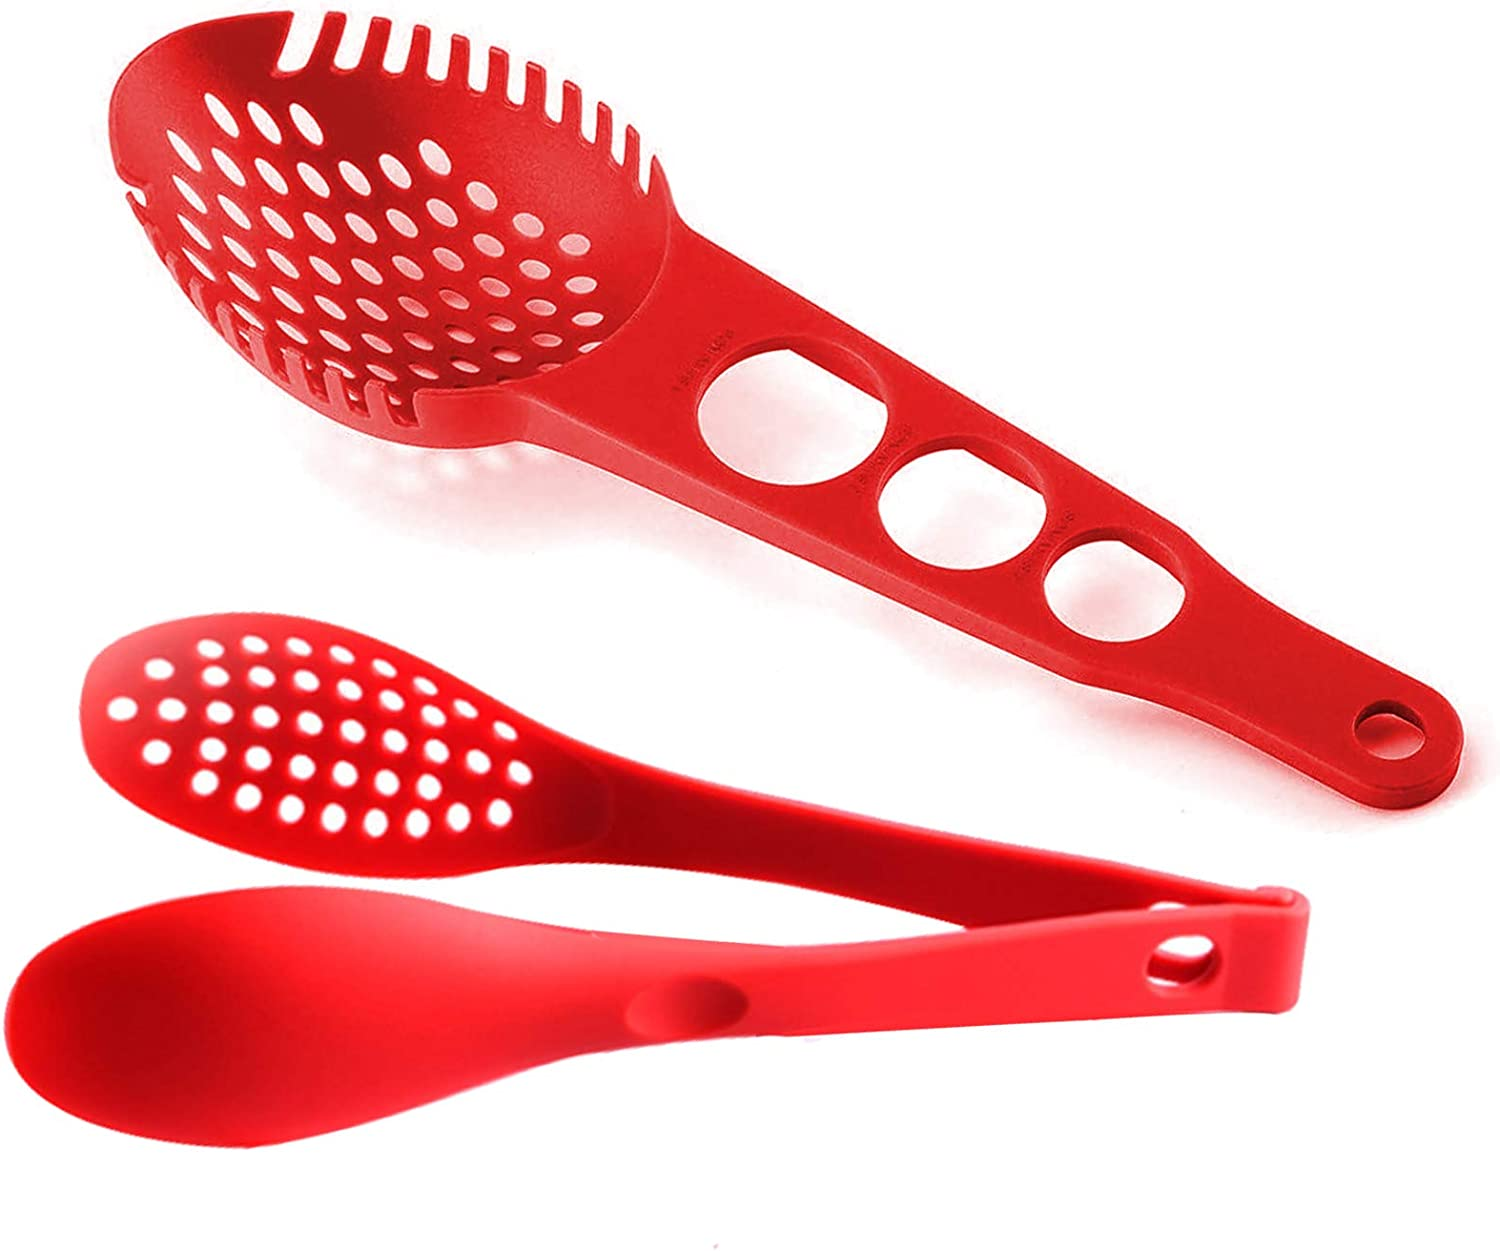 Silicone spaghetti spoon with measuring tape and multifunctional silicone food tongs snack tongs meatball tongs-small tools for kitchen